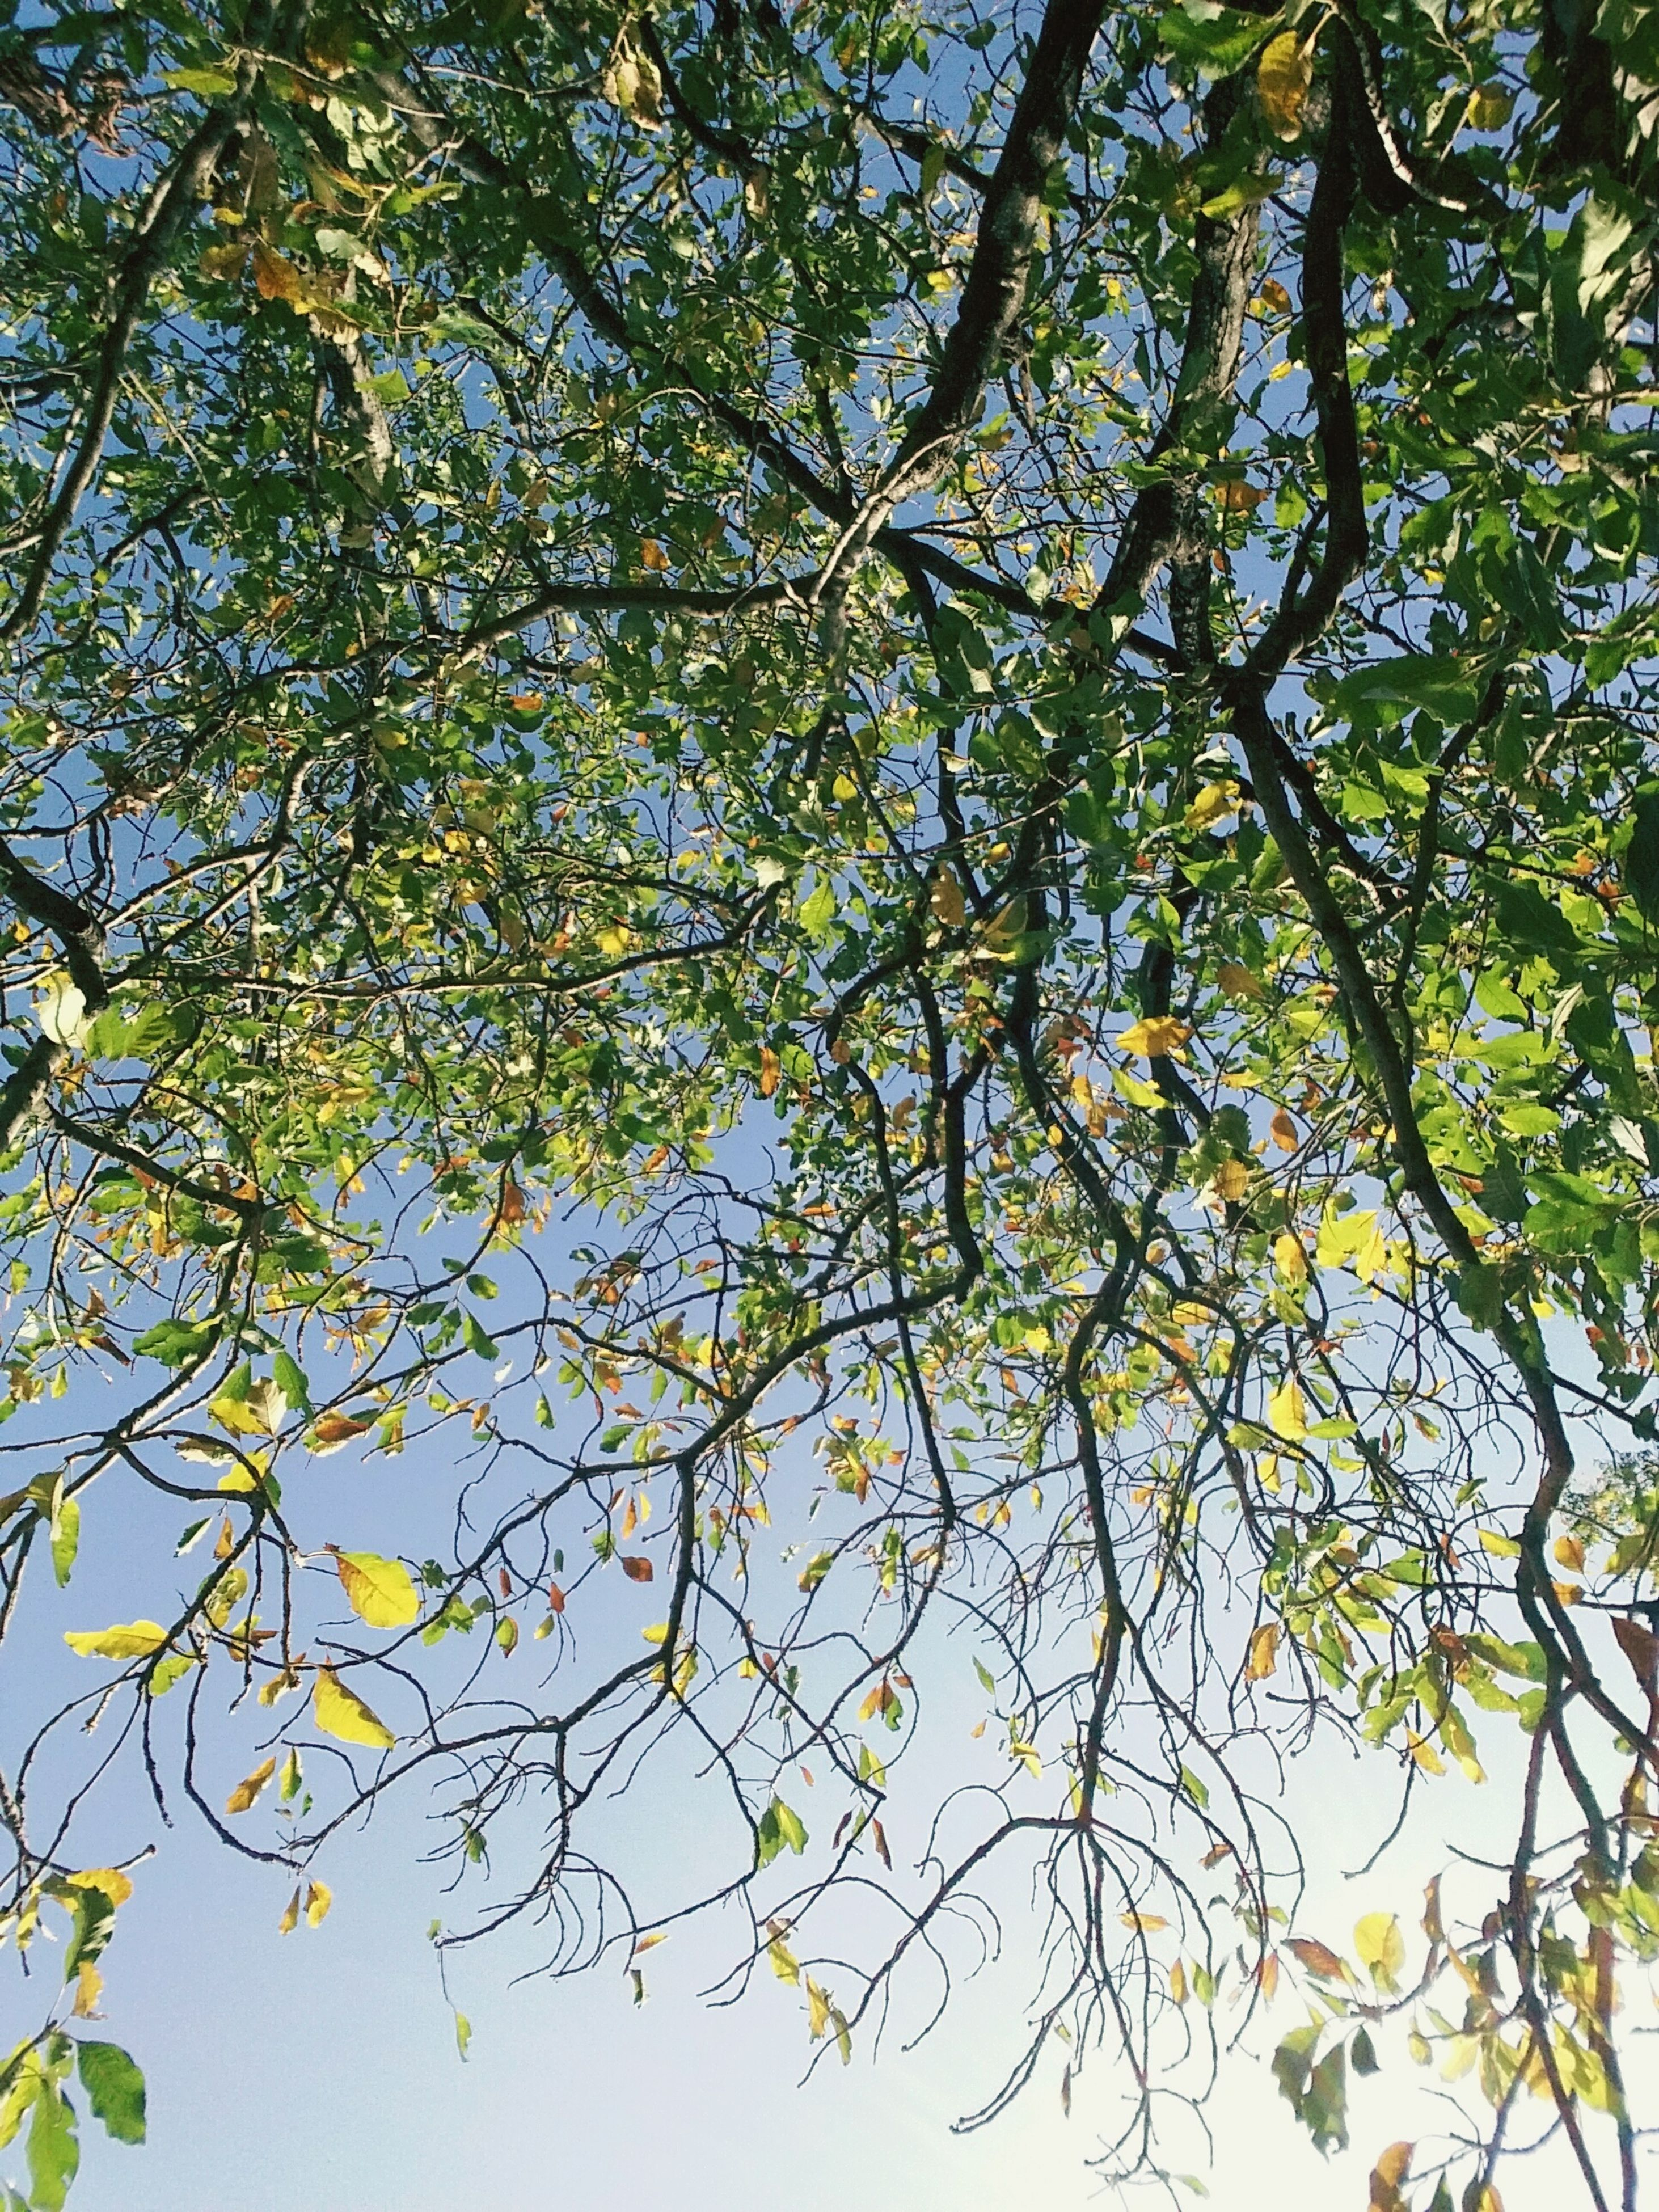 tree, branch, low angle view, growth, nature, beauty in nature, leaf, tranquility, yellow, green color, outdoors, day, no people, sunlight, sky, scenics, clear sky, autumn, tranquil scene, lush foliage